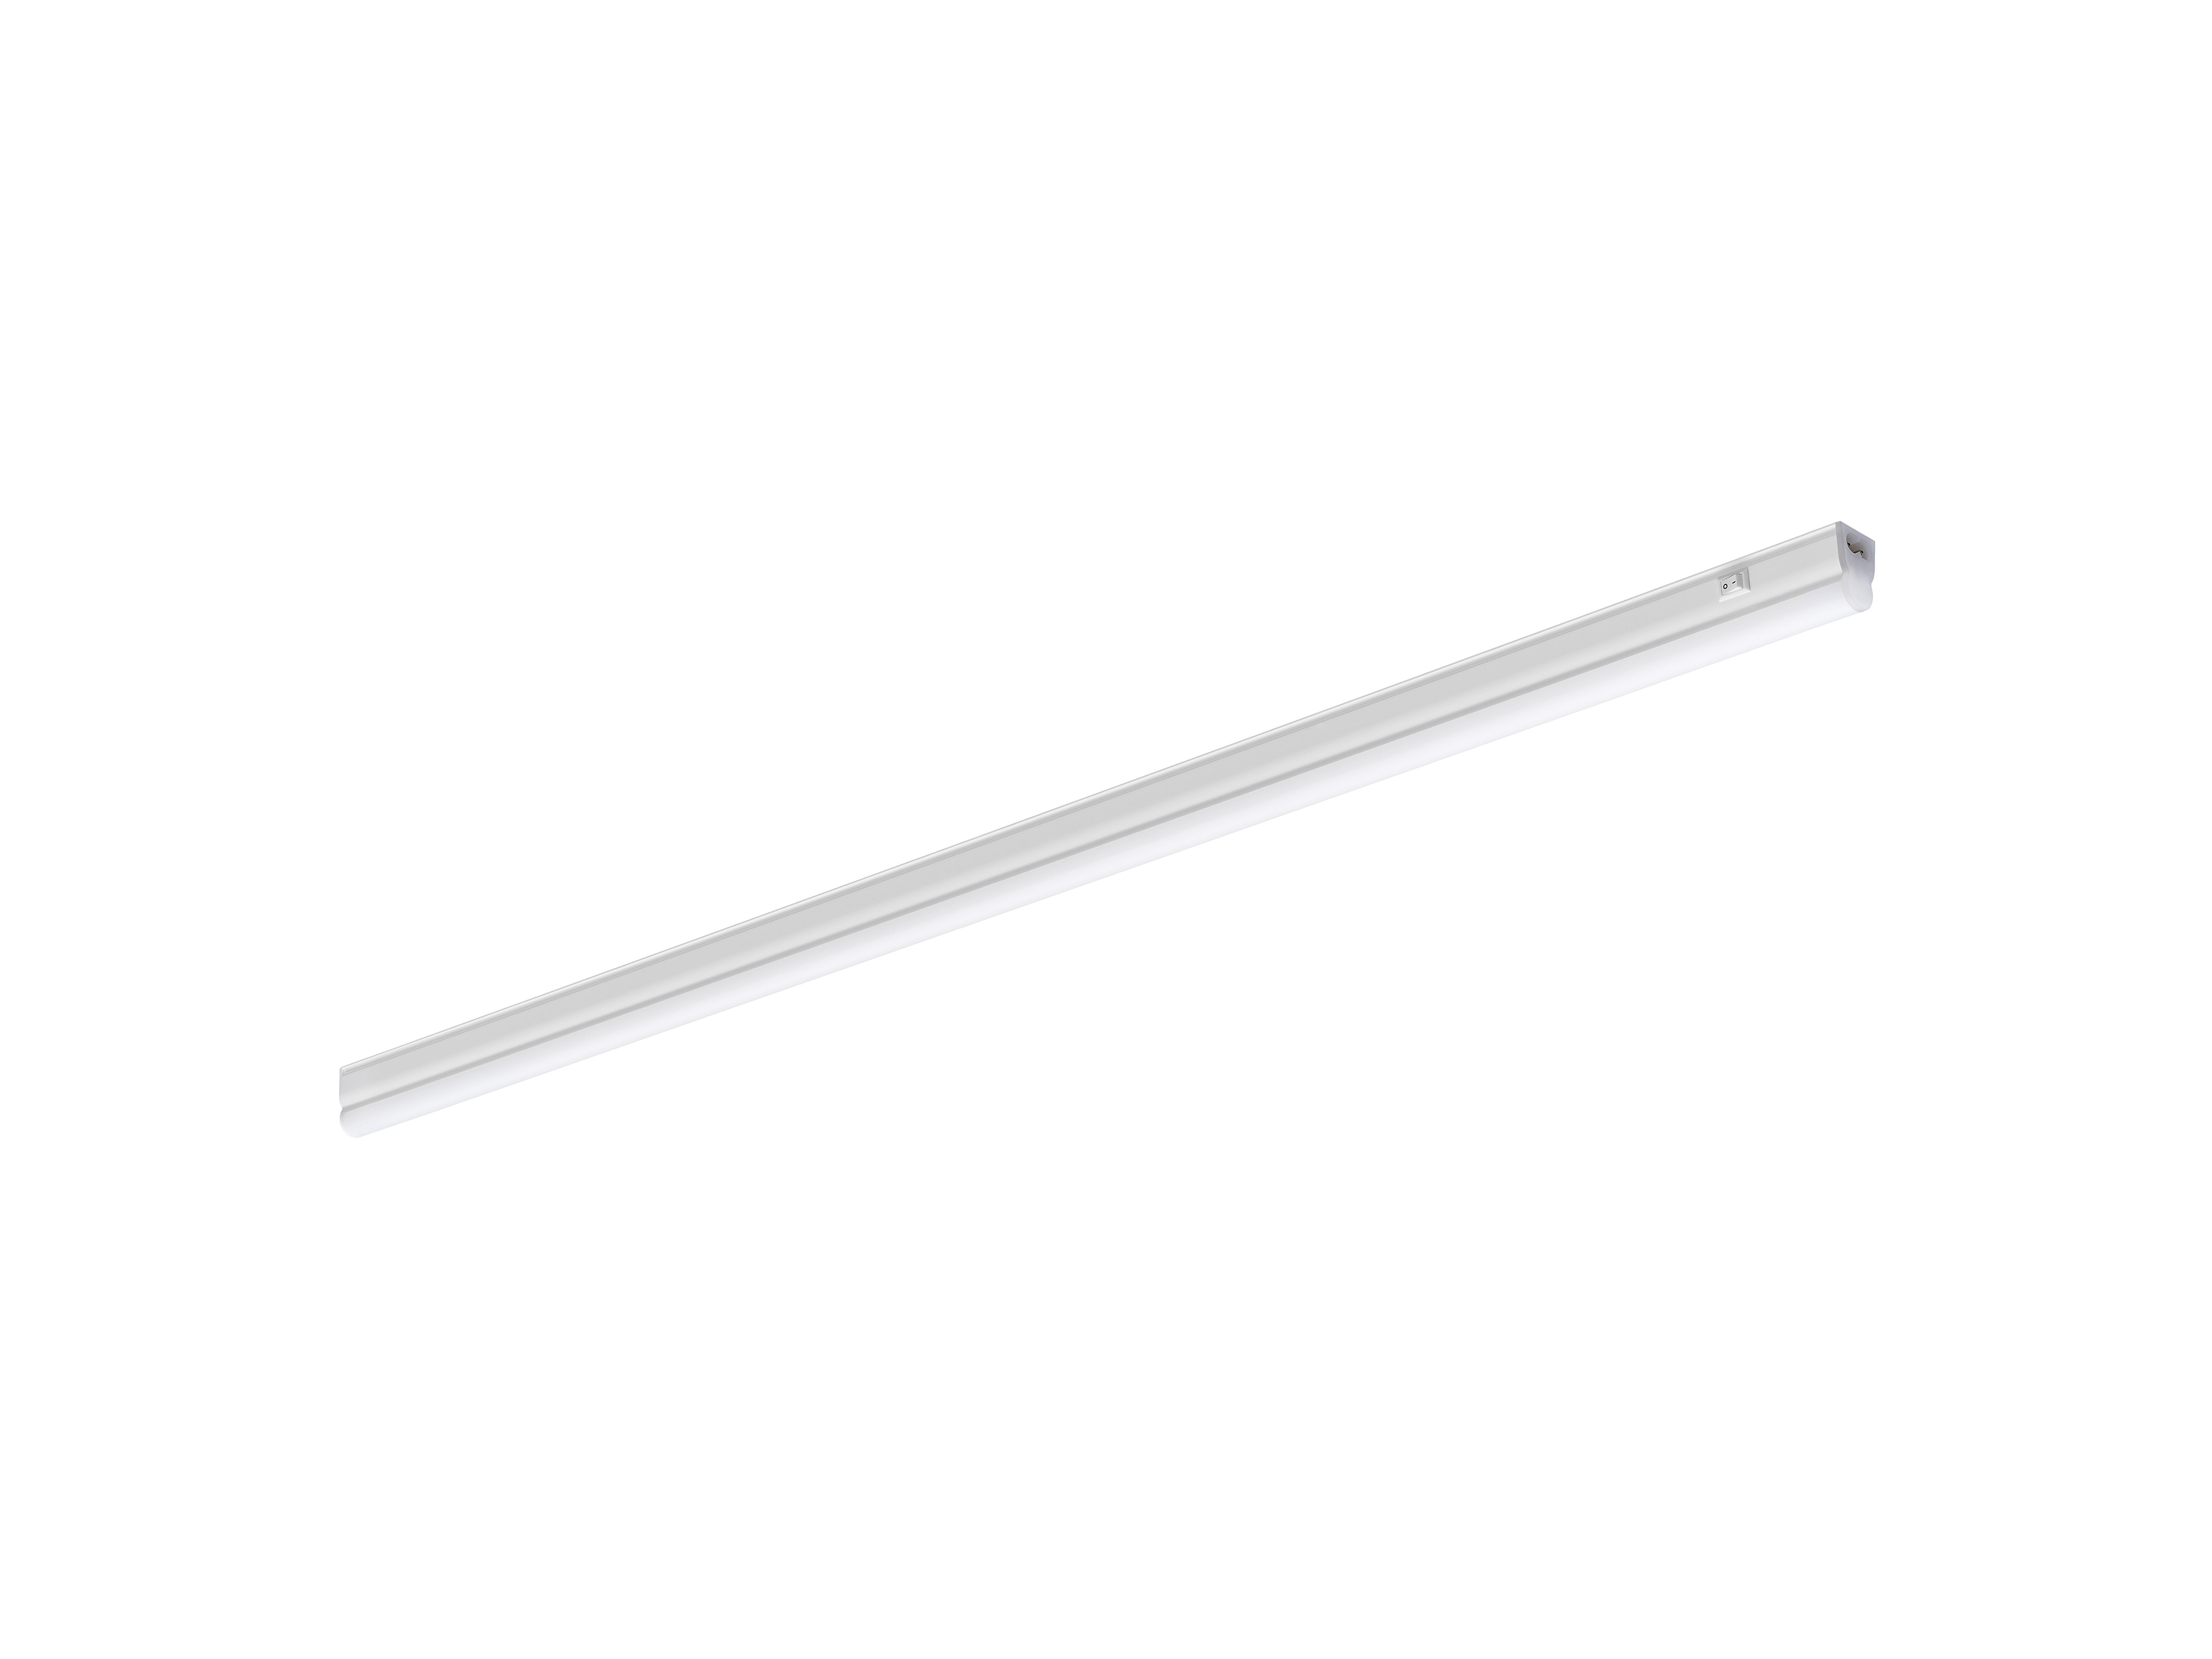 Sylvania PIPE LED under cabinet light 4W warm white 300mm length Thumbnail 1